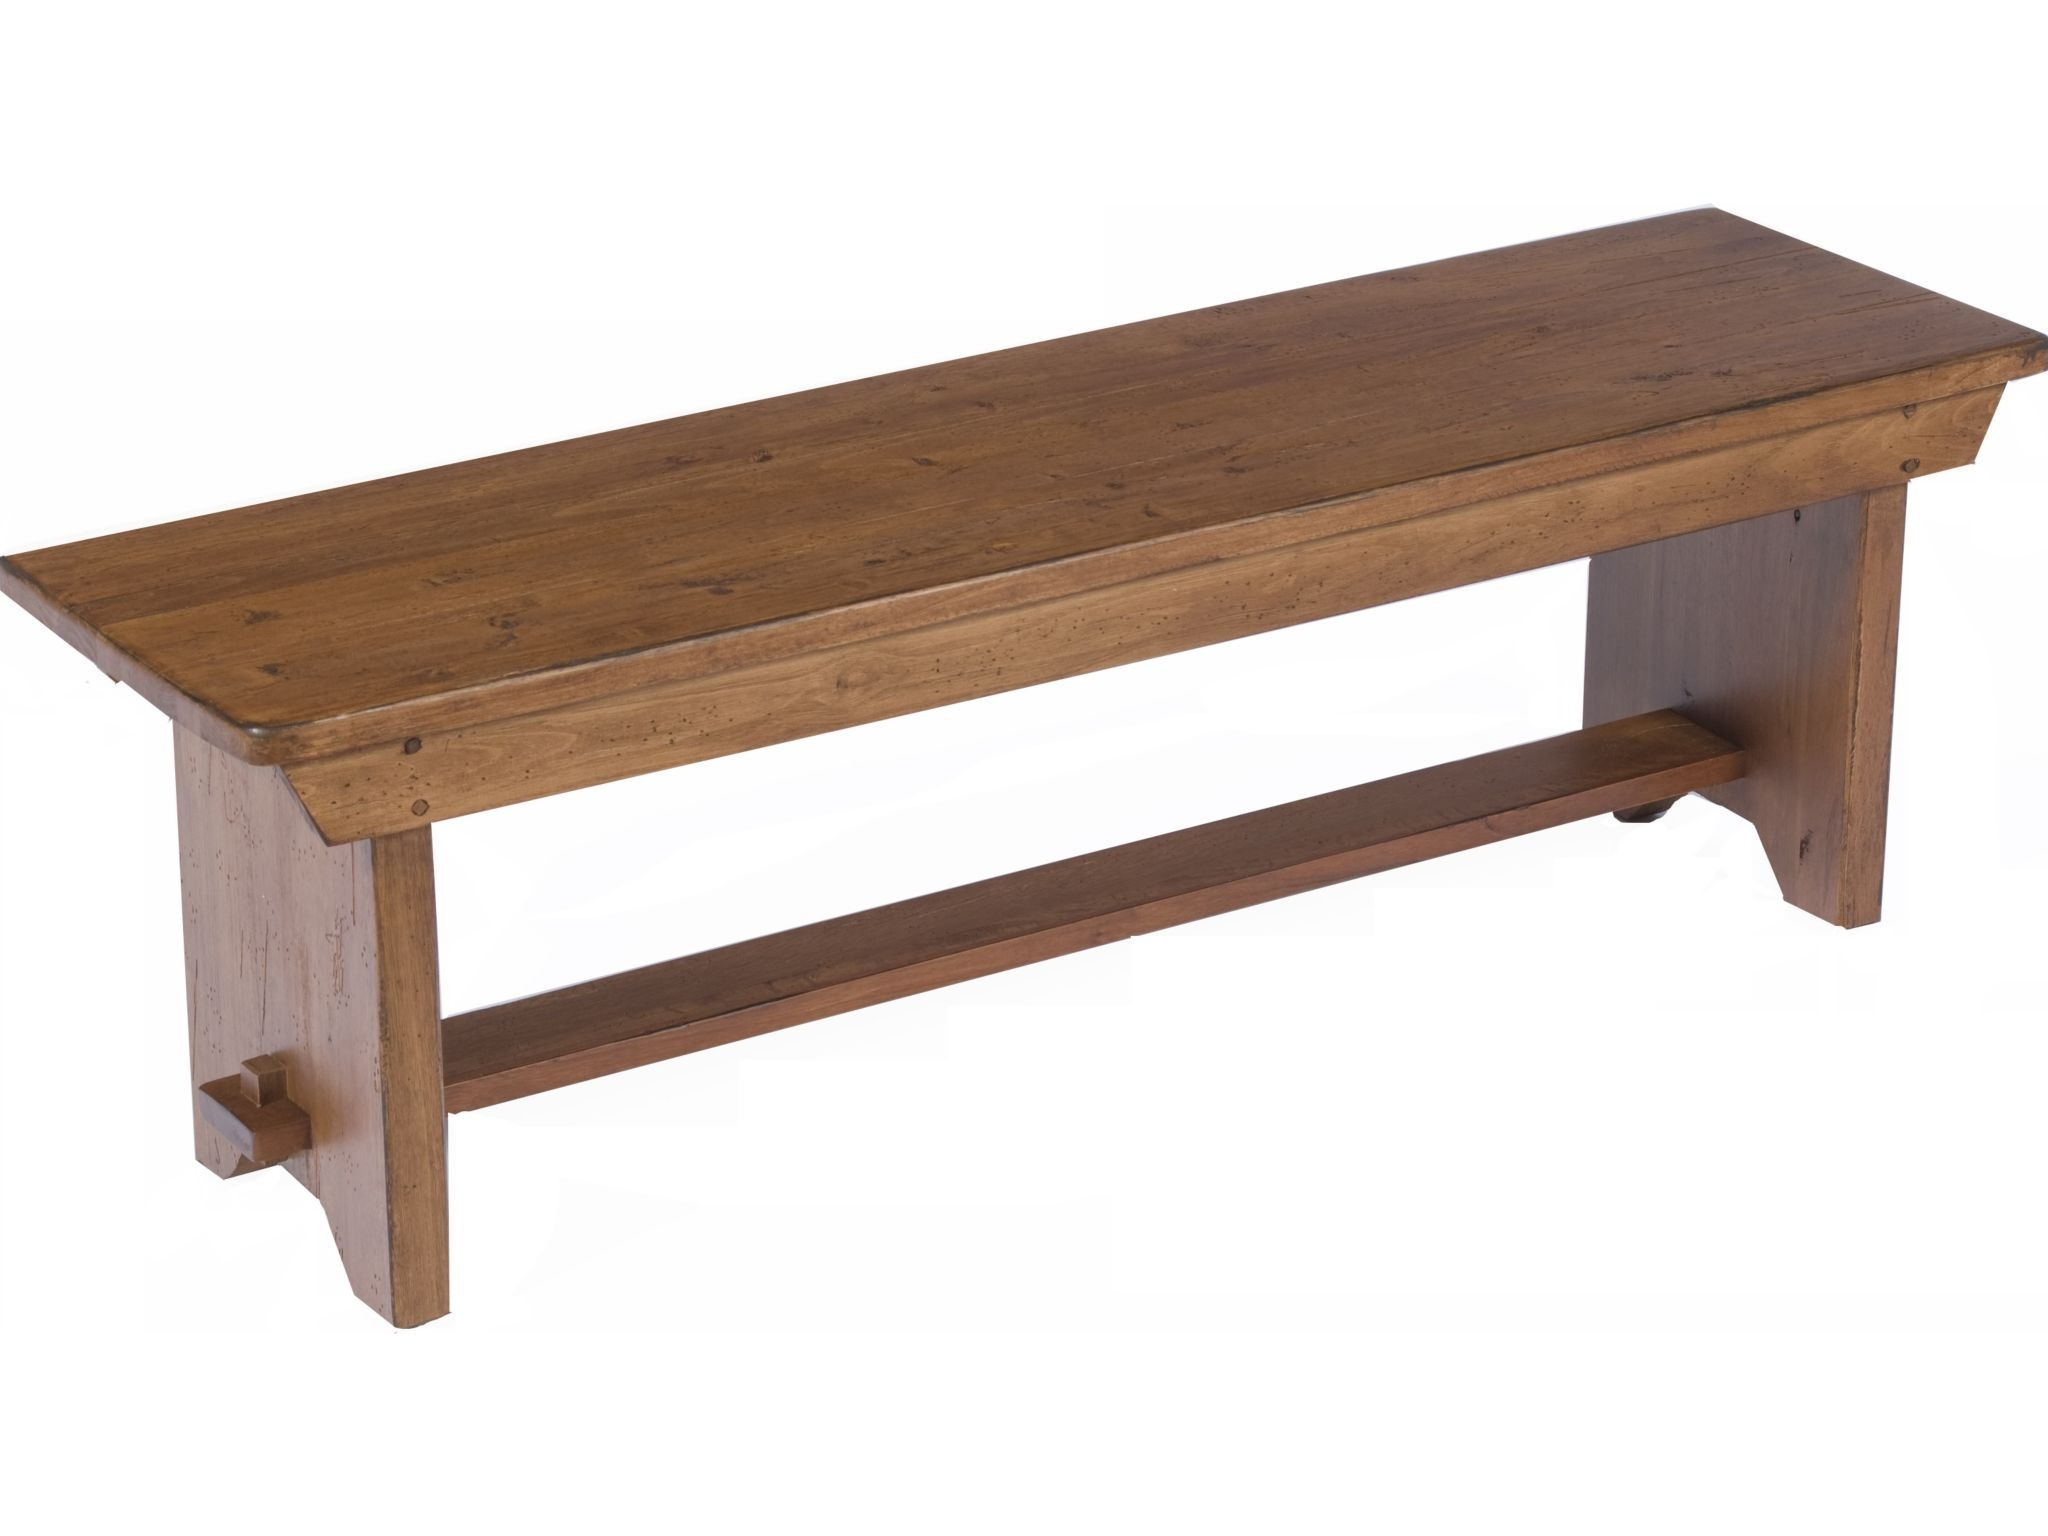 Broyhill Attic Heirlooms Dining Bench, Rustic Oak 5399 96V